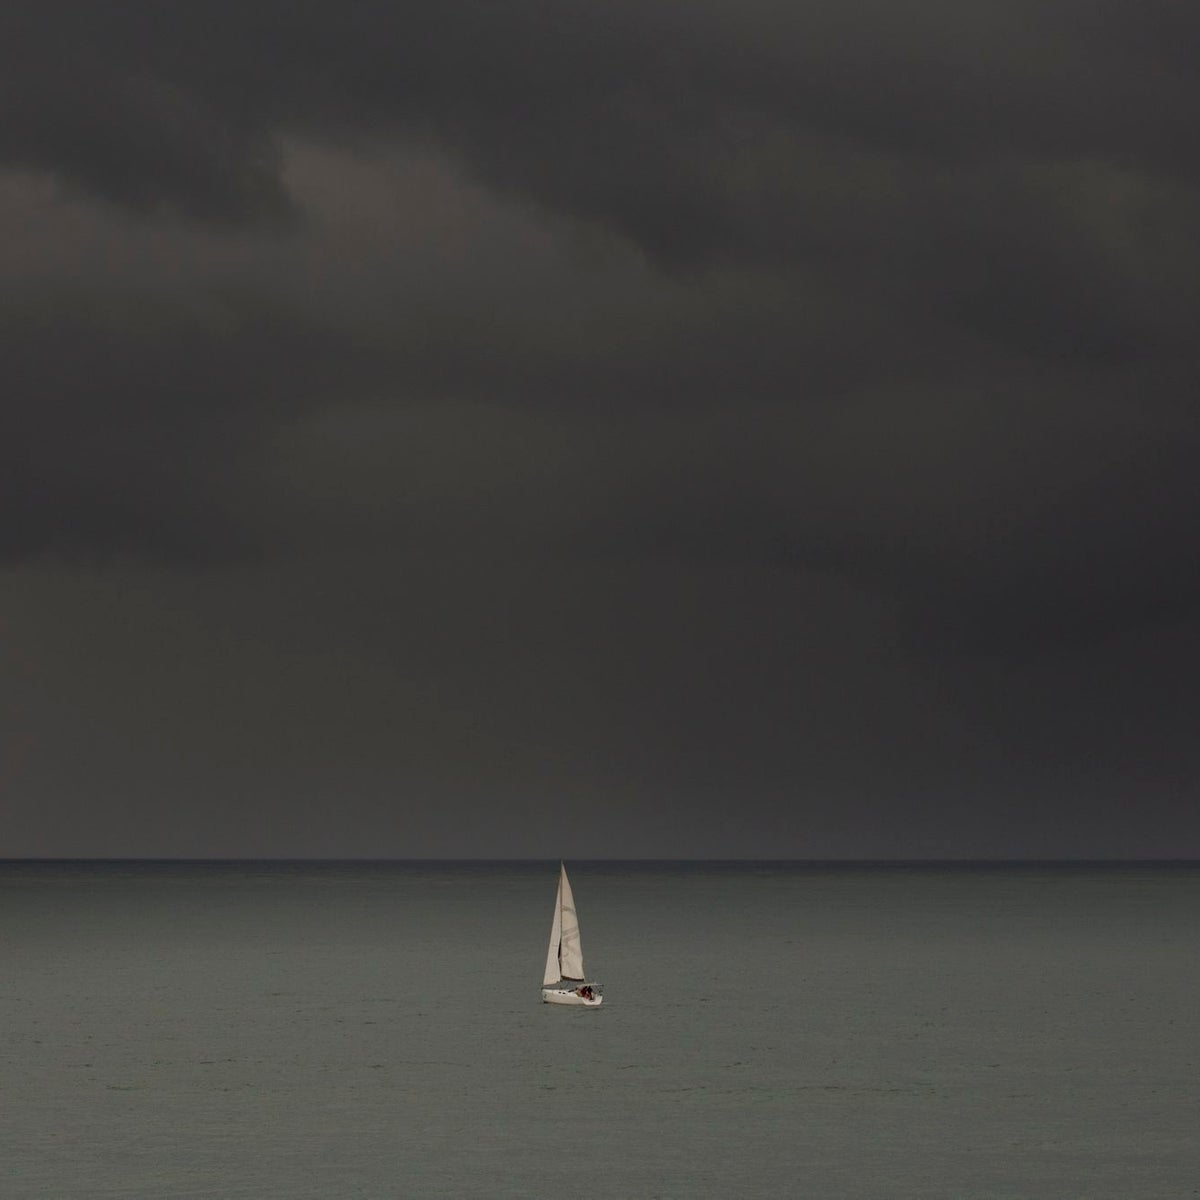 FILE PHOTO: A sailboat in the rain in Israel